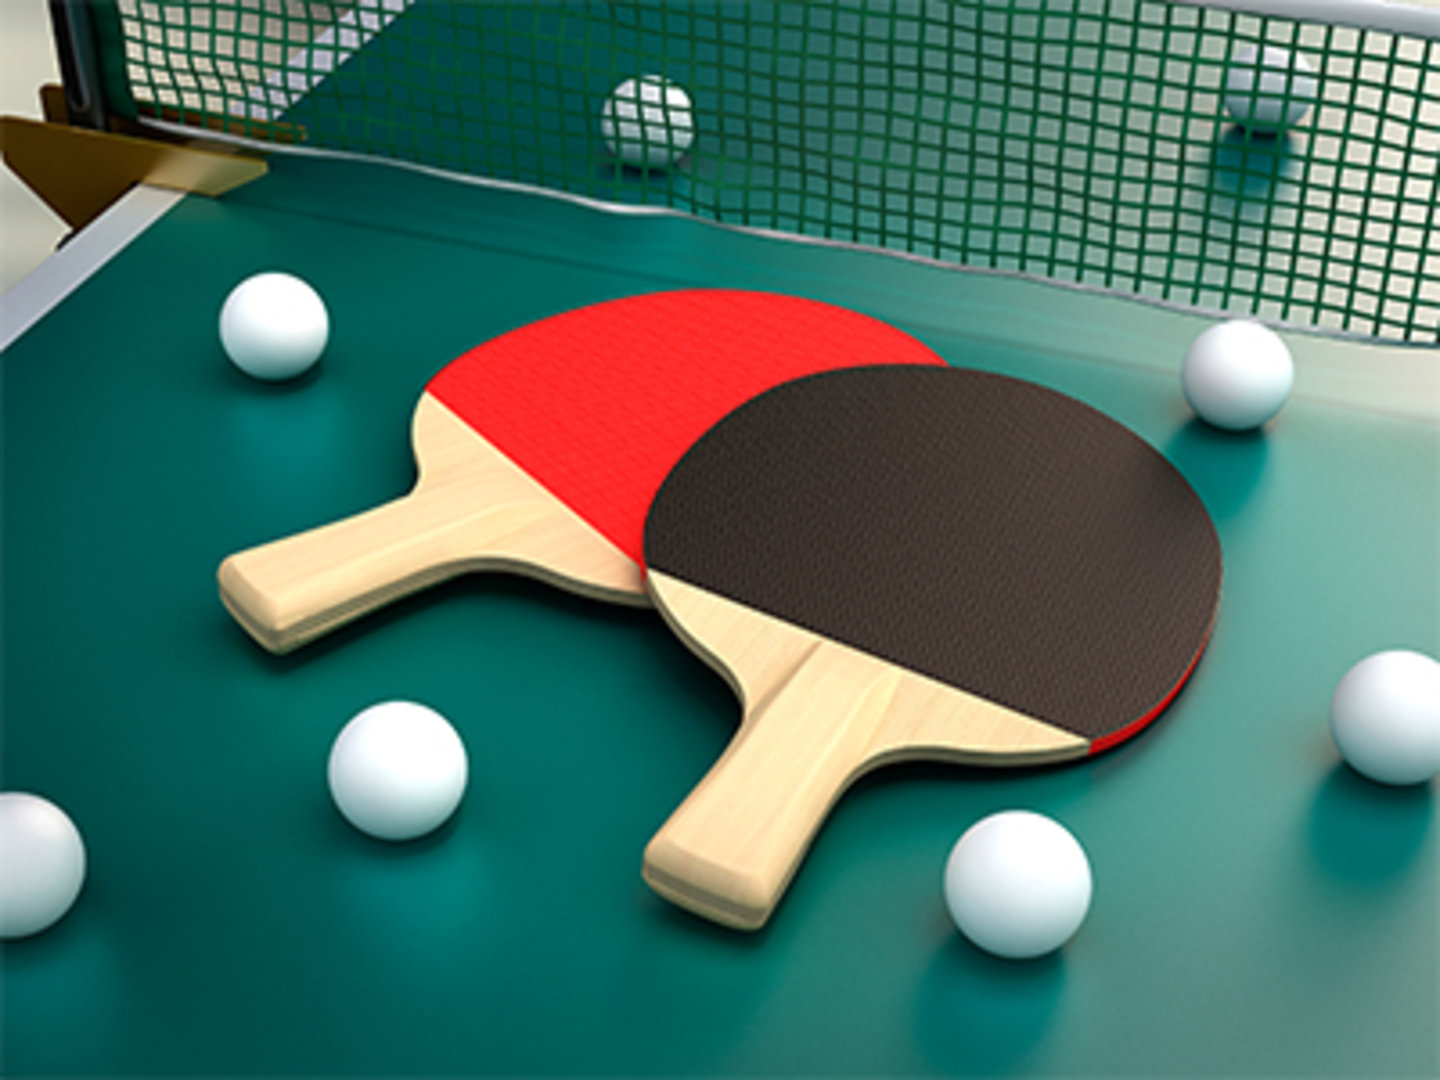 BANKSTOWN SPORTS BOWLS TABLE TENNIS